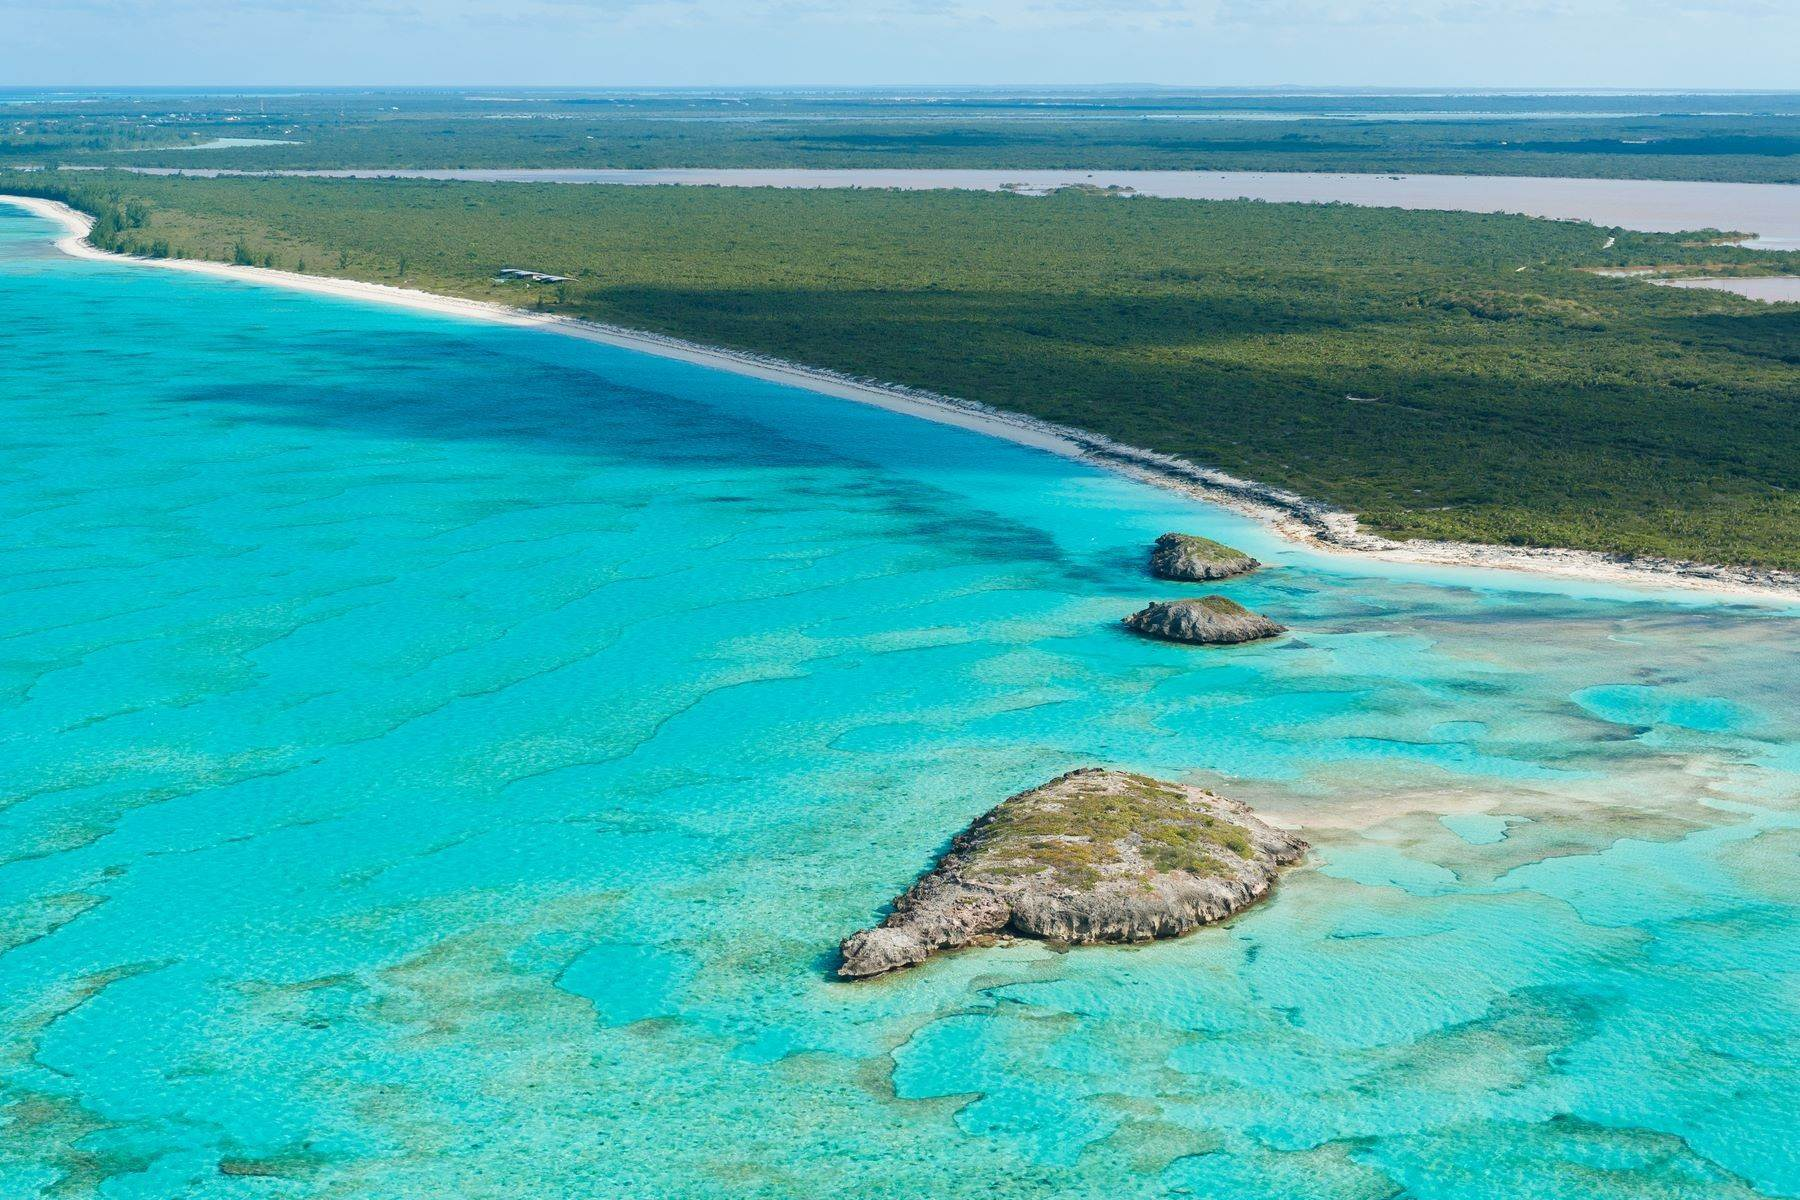 Land for Sale at Sandy Point Beachfront - 5 Acres Sandy Point, North Caicos Turks And Caicos Islands